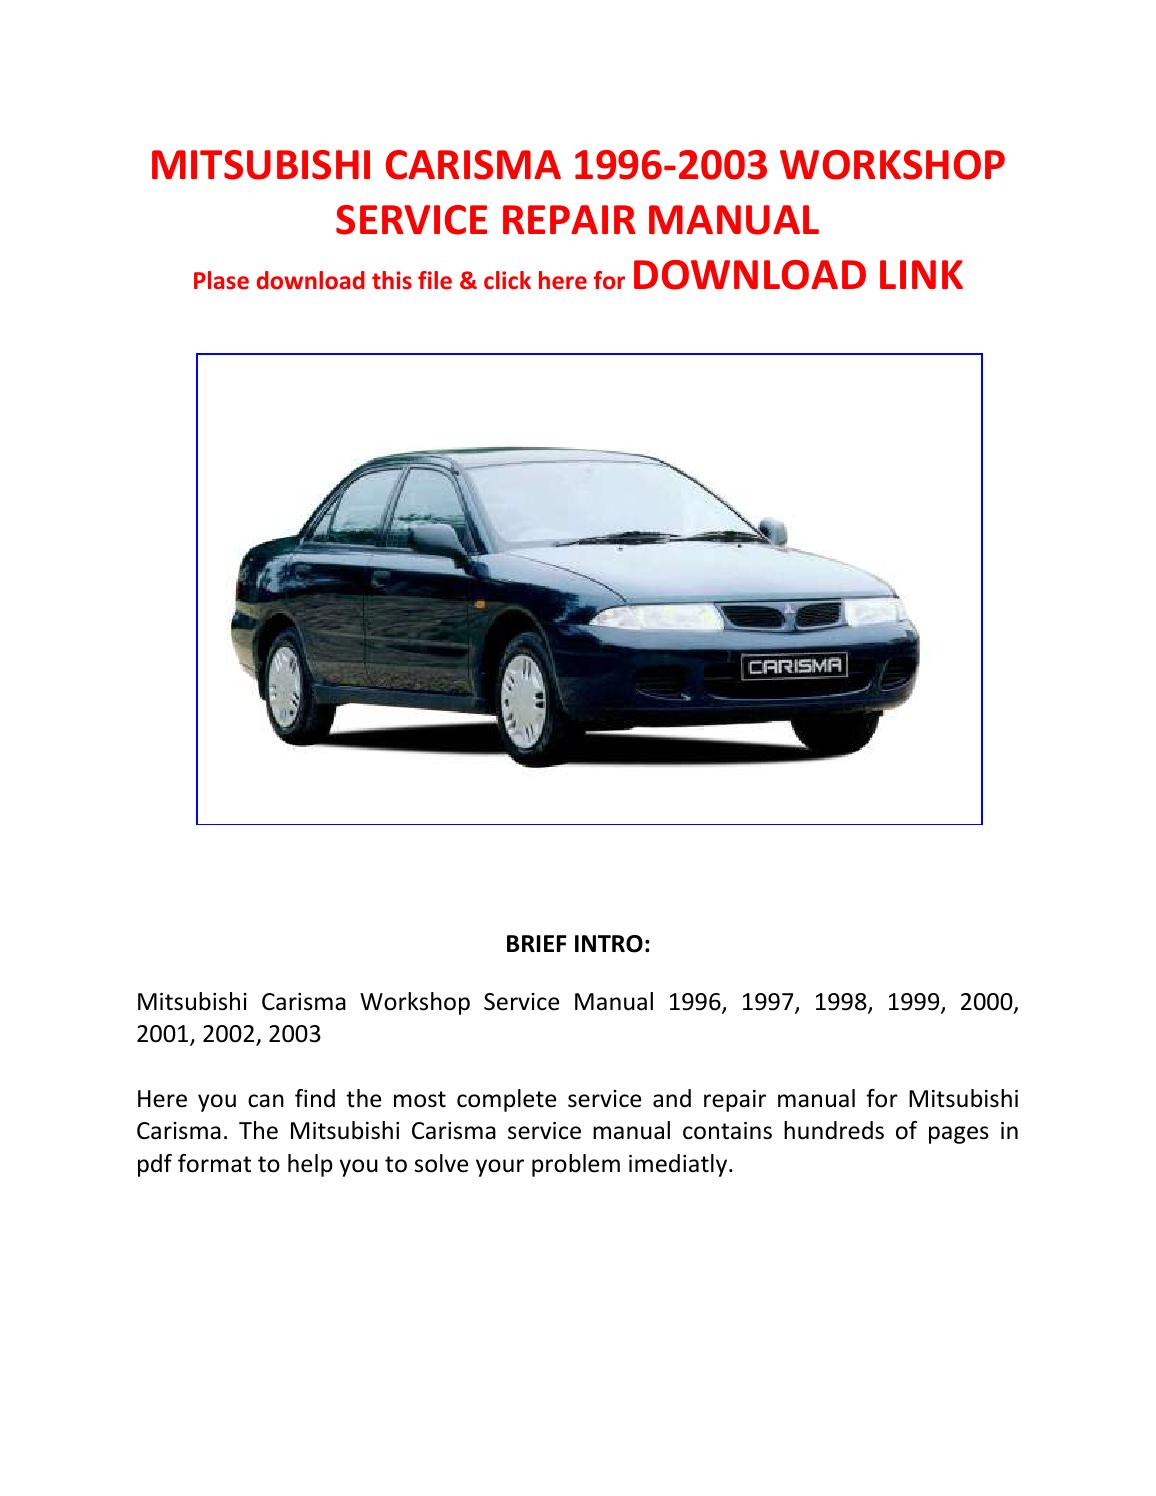 Mitsubishi Carisma 1996 2003 Workshop Service Repair Manual By Pam Per Issuu